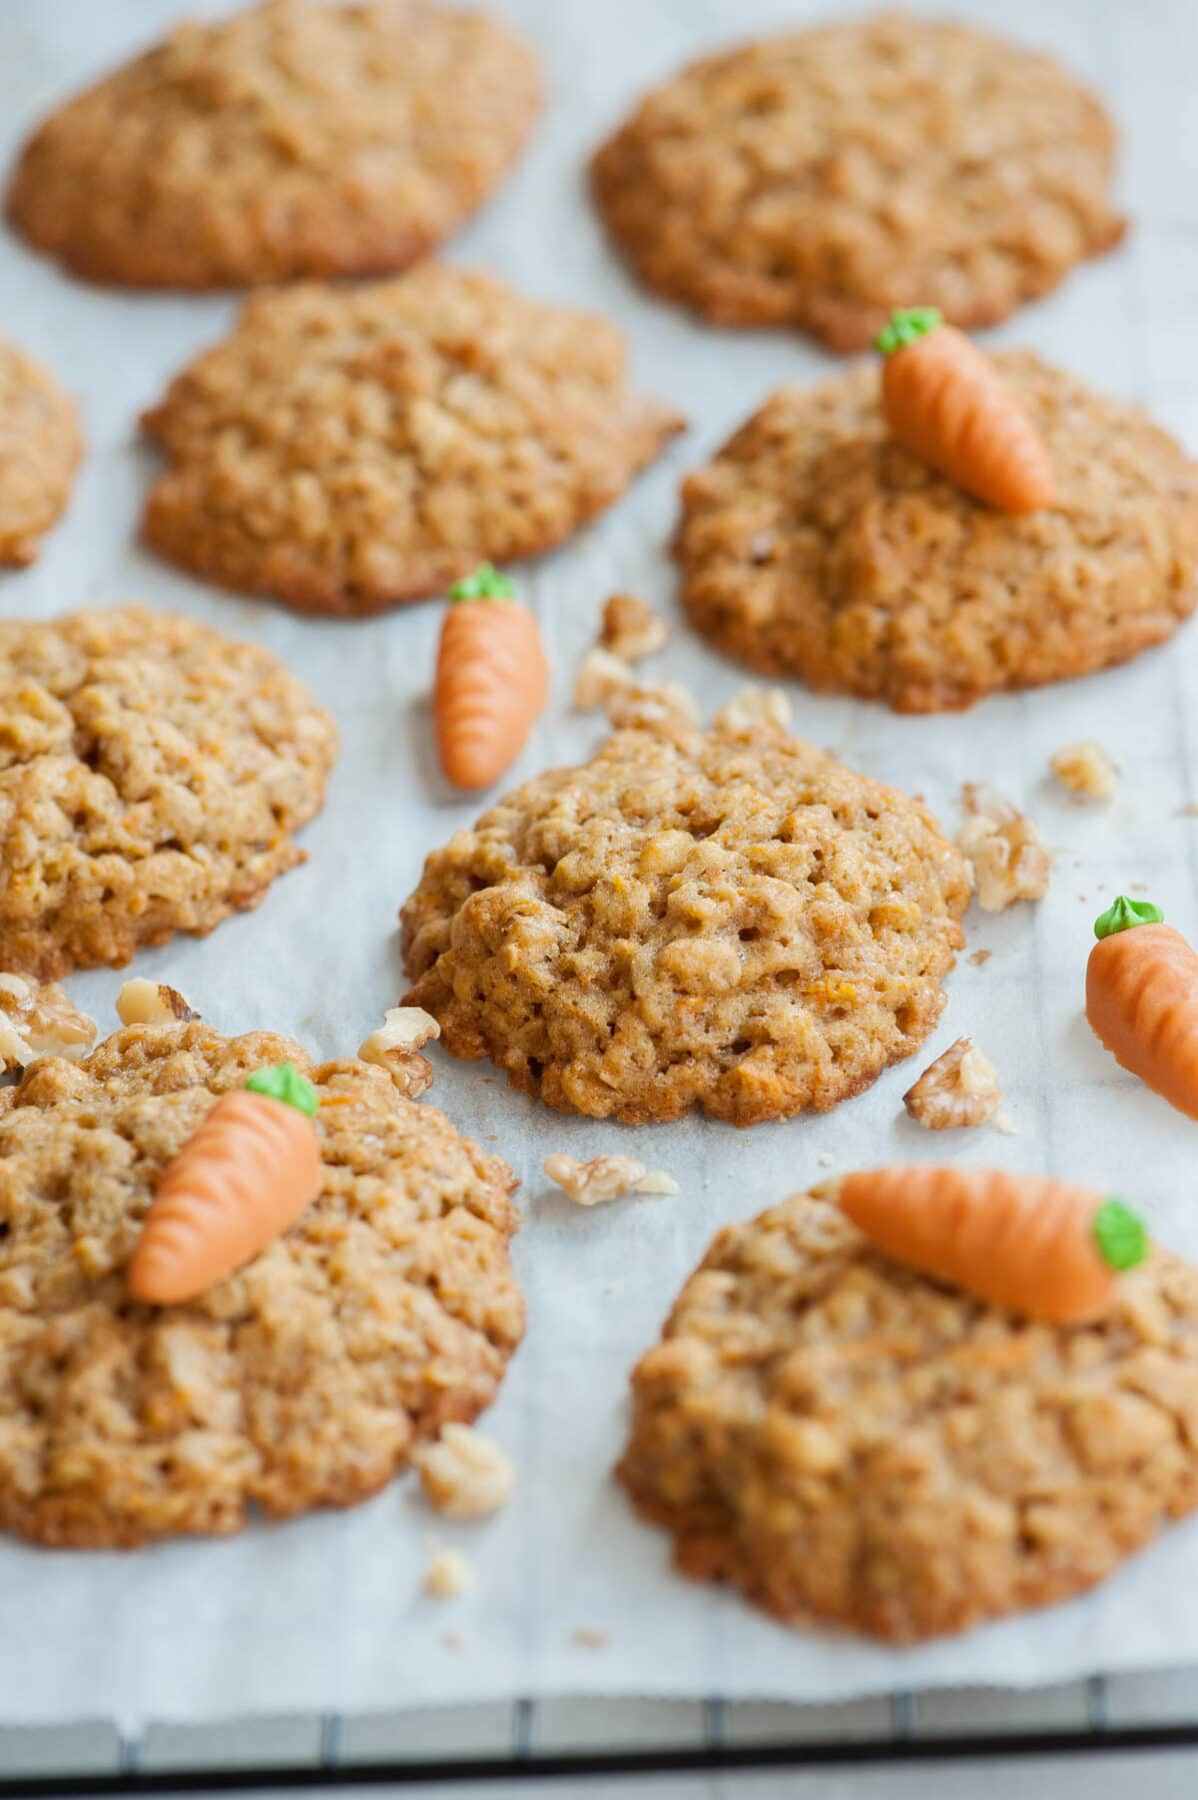 Carrot cake cookies on a piece of parchment paper, topped with marzipan carrots and walnuts.